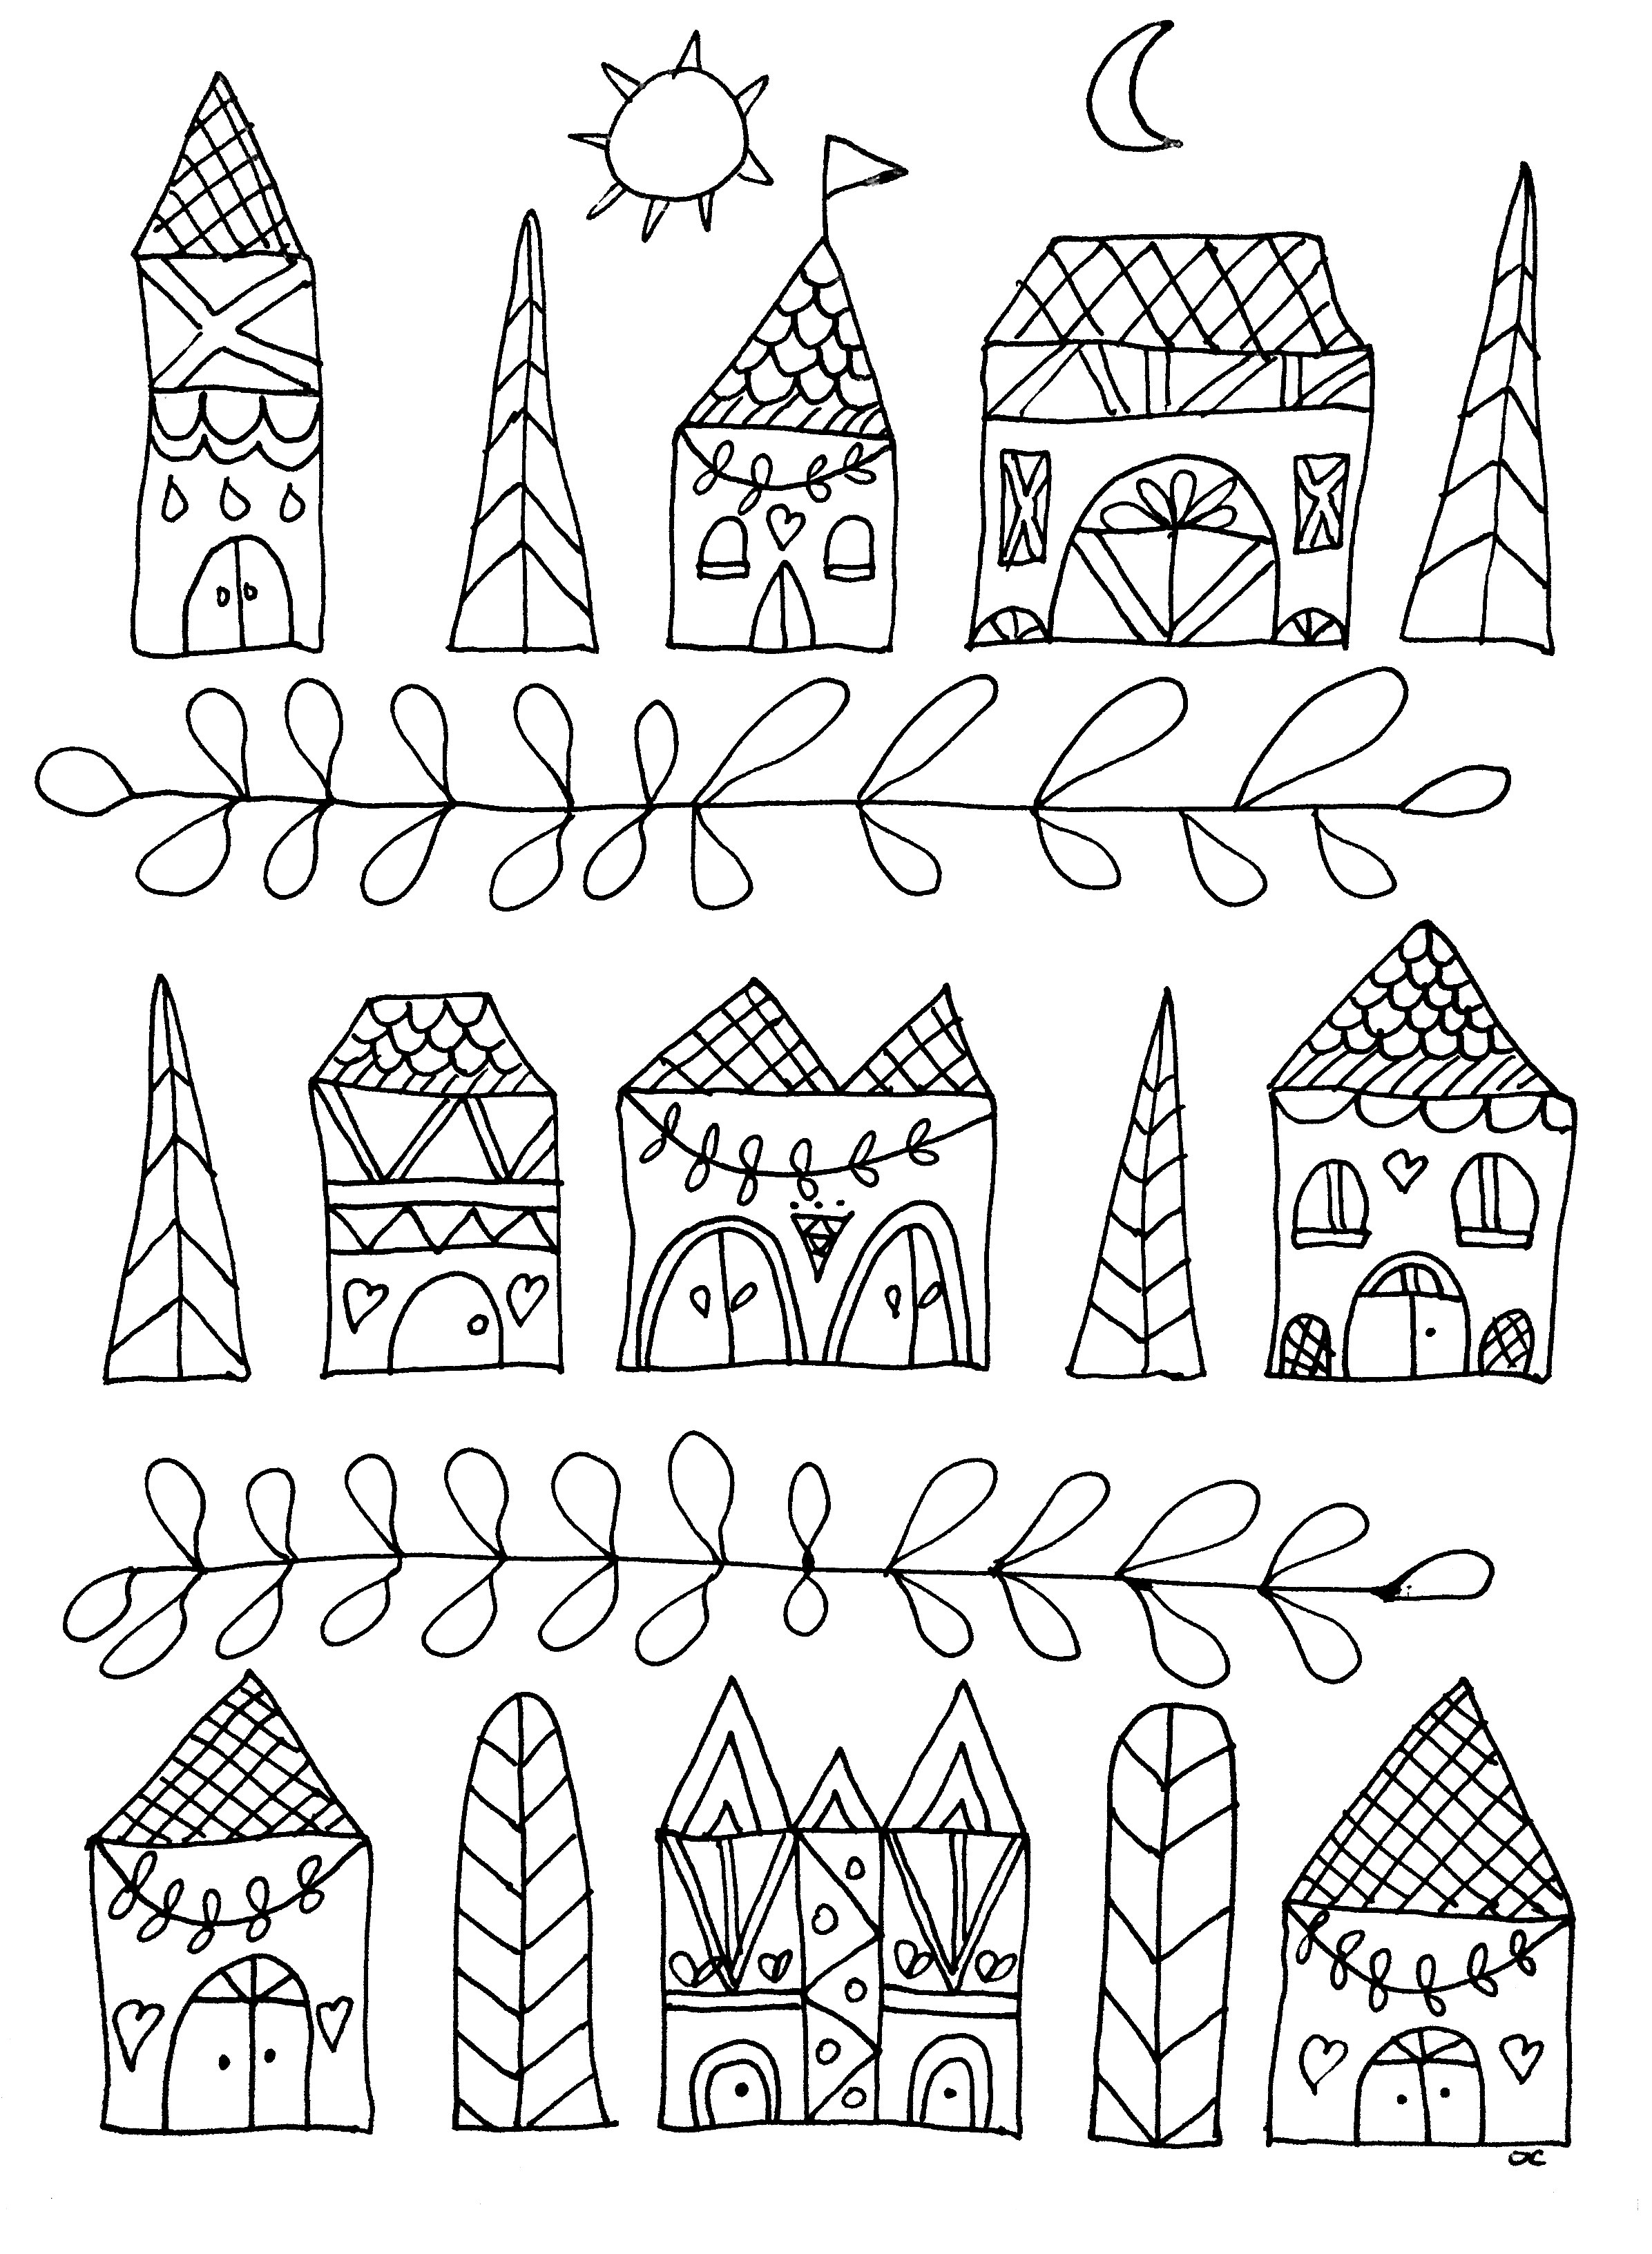 Simple drawing with cute houses